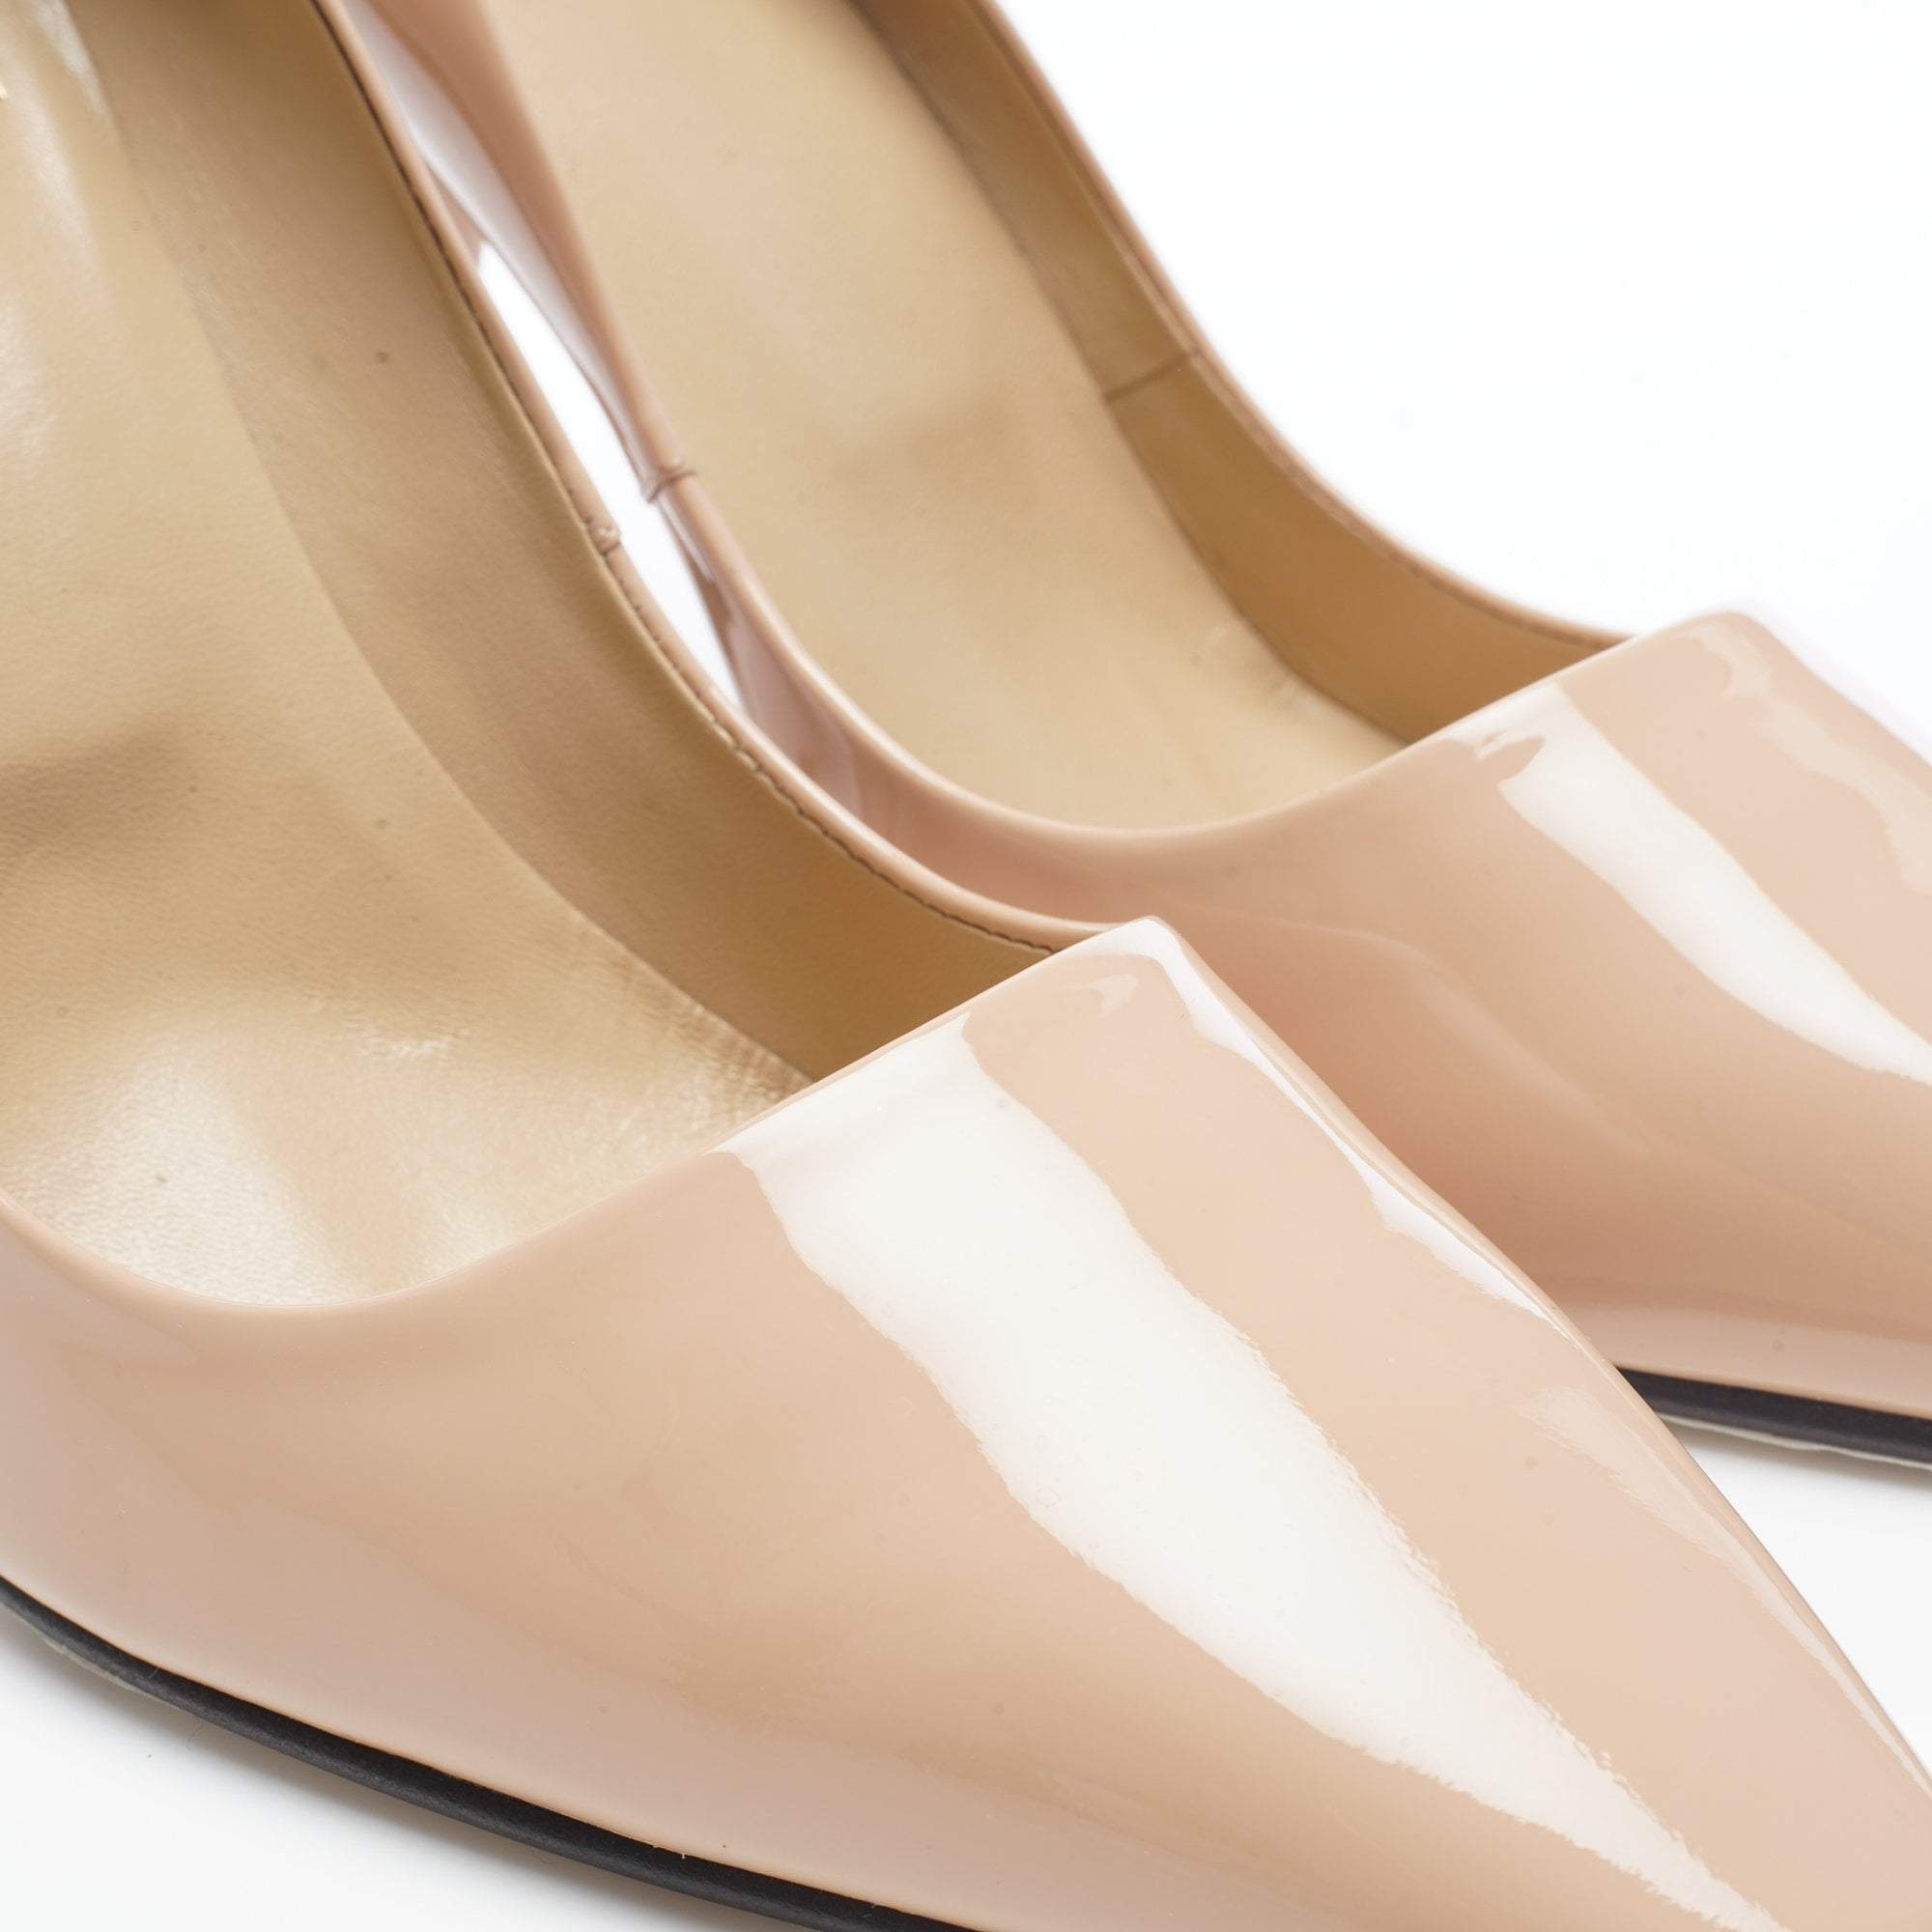 Roger Vivier Curved Heel Nude Patent Leather Pumps